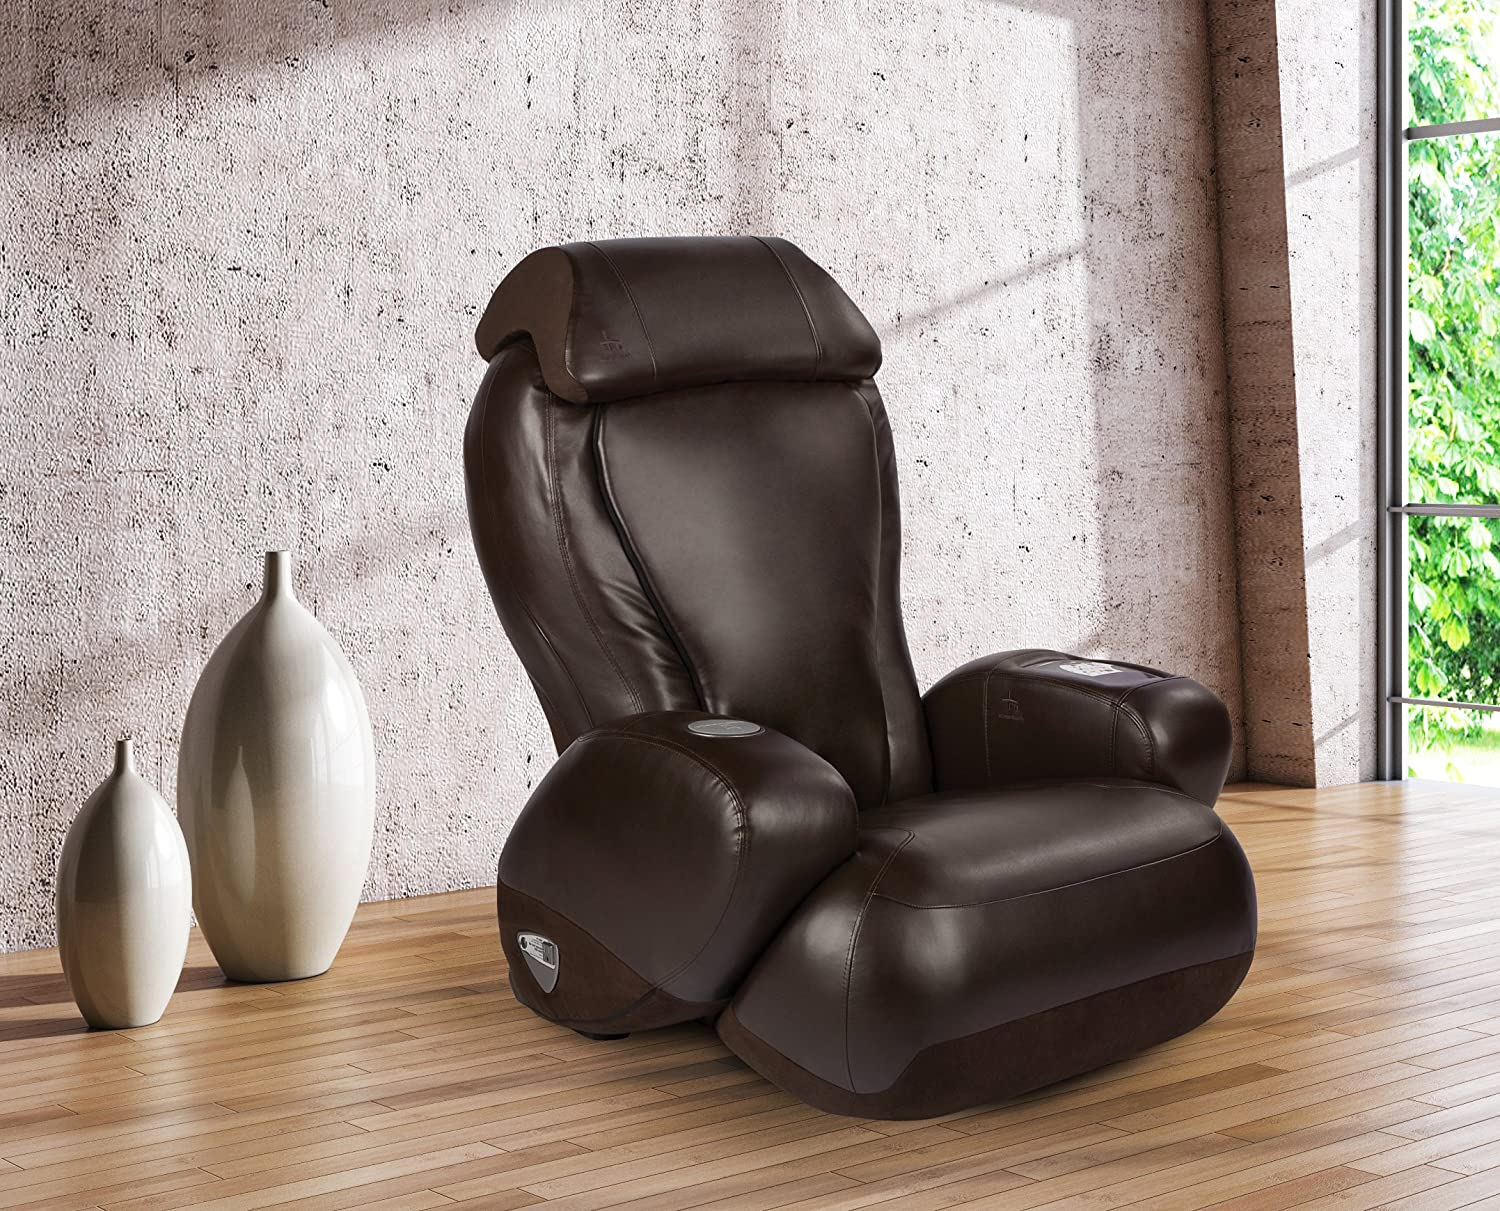 bm full product best factory black rakuten shop gravity massage zero direct recliner body chair shiatsu bestmassage wholesale